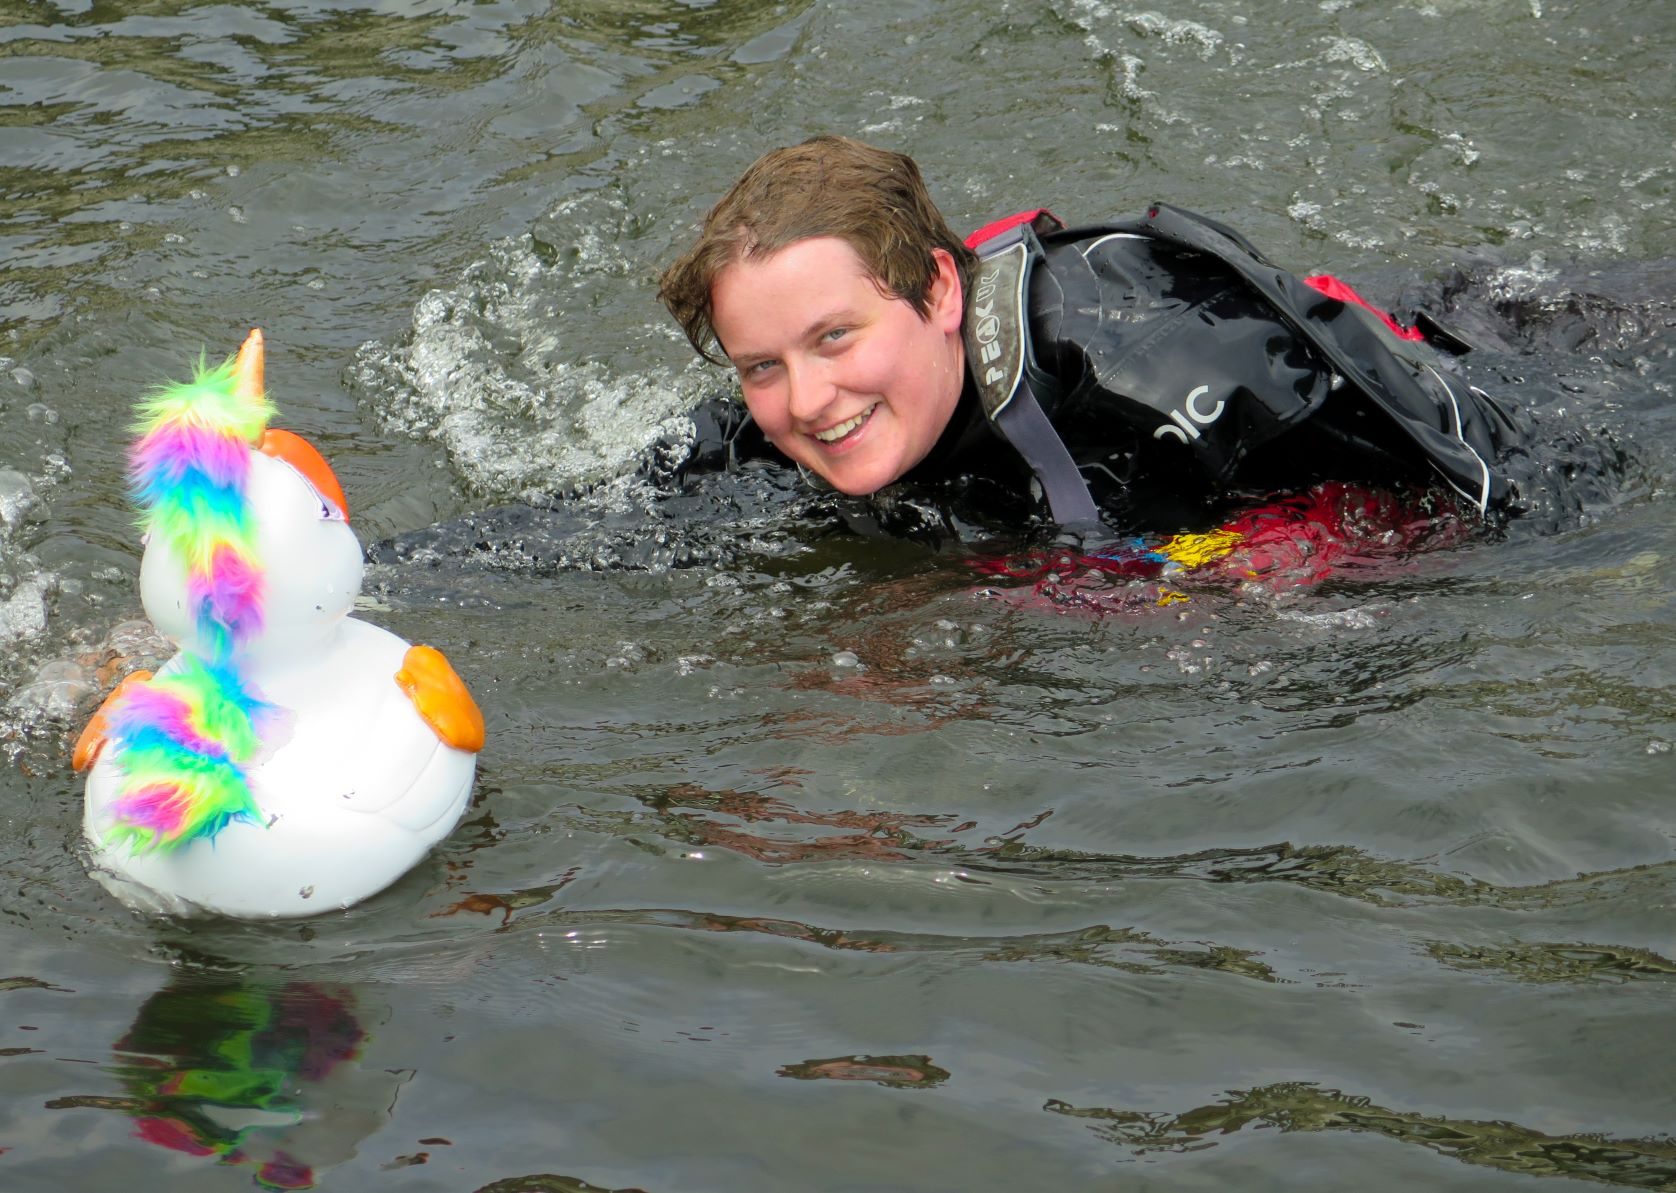 Watersafe diver and unicorn duck